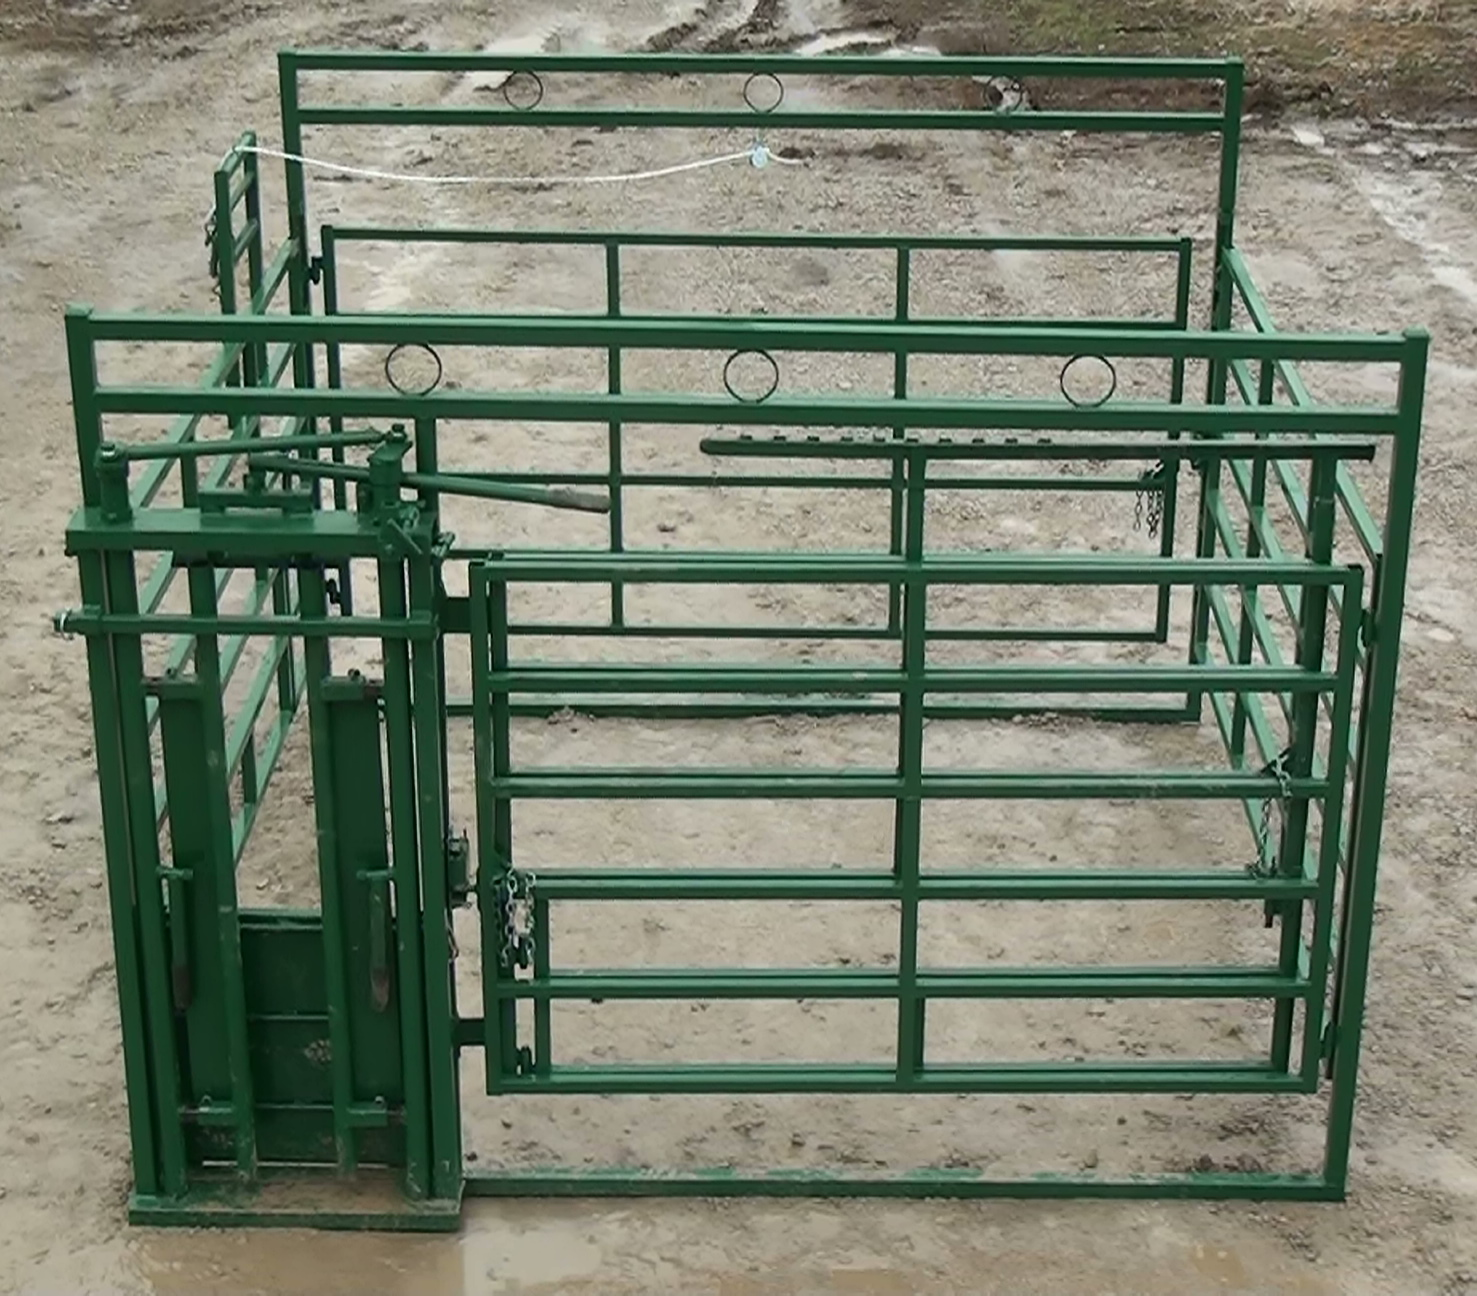 Calving Pen And Panels To Make Heifer Calving A Breeze